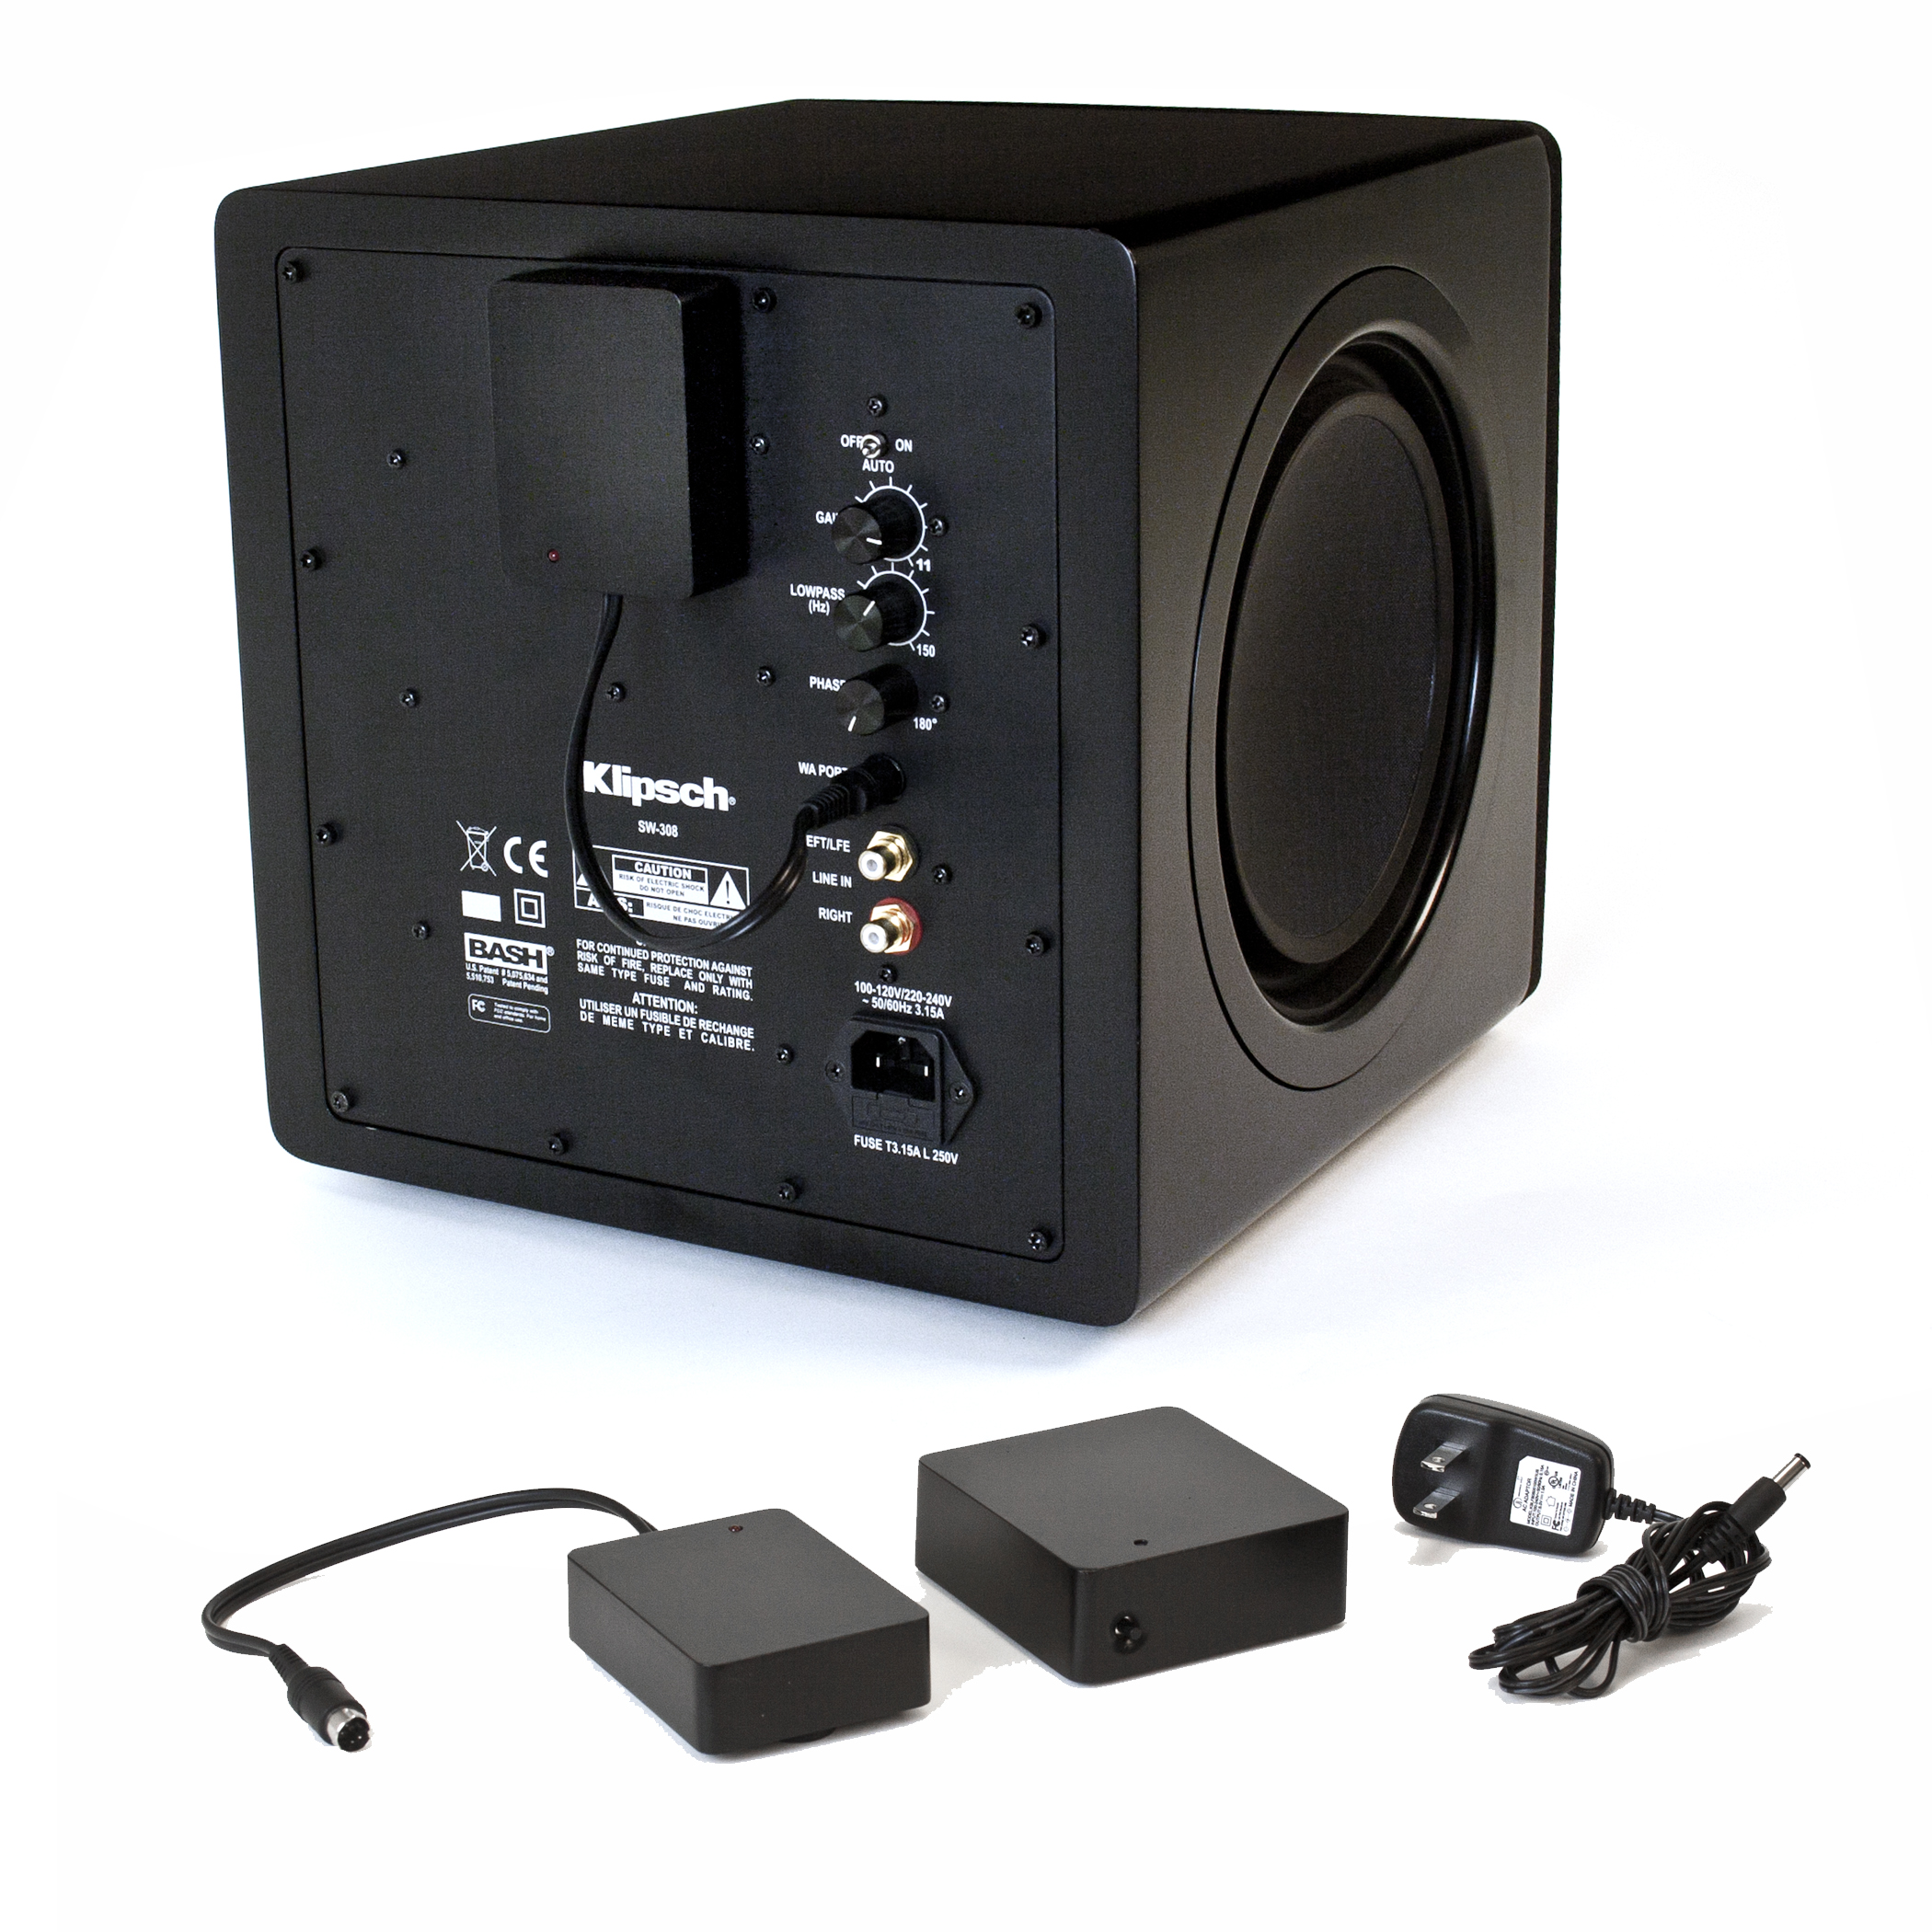 wa 2 wireless subwoofer kit high quality home audio by klipsch. Black Bedroom Furniture Sets. Home Design Ideas